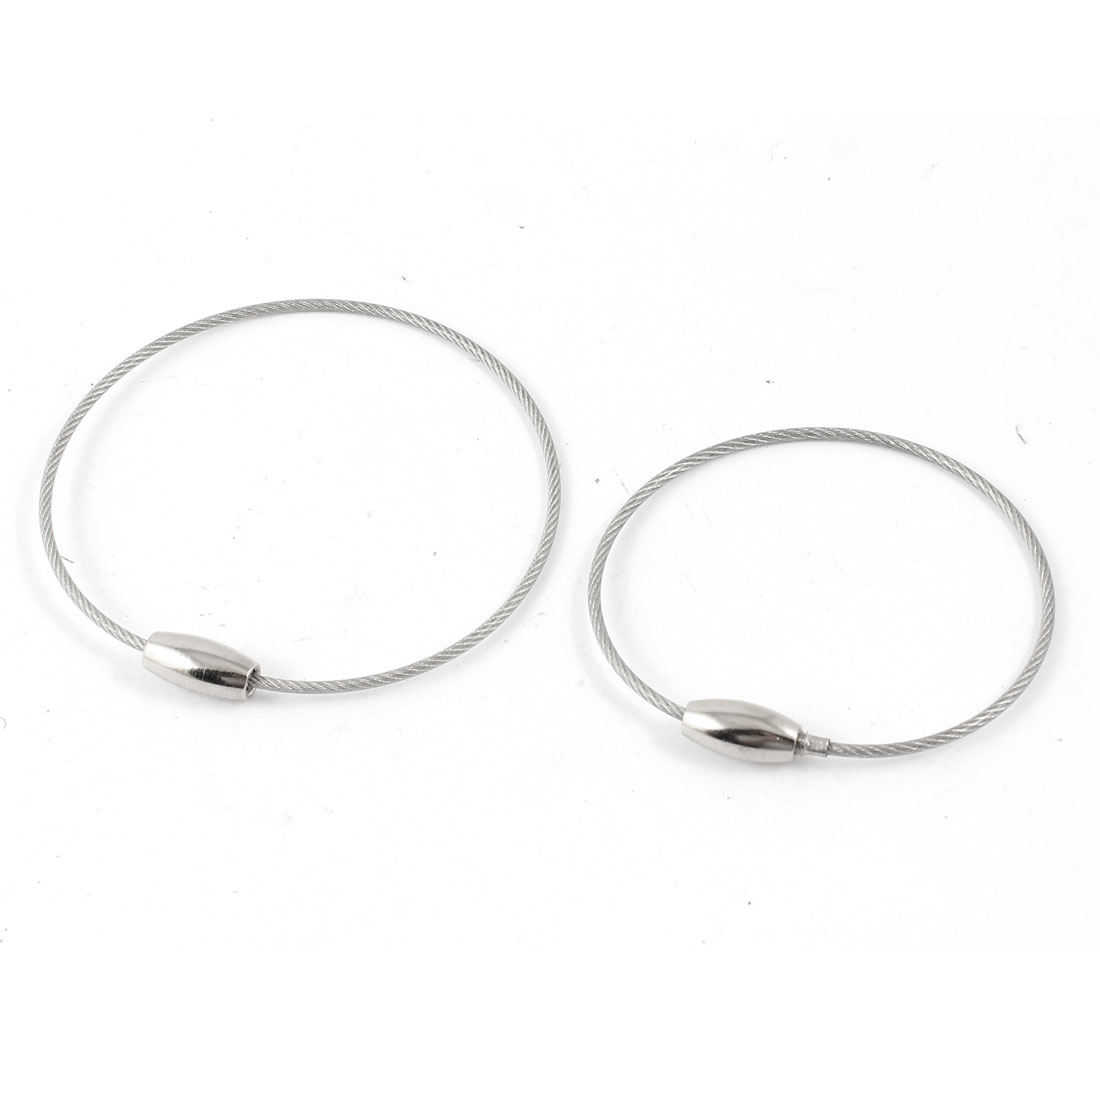 1.5mm Dia Stainless Steel Wire Ring Key Holder Rope Cable 2 Pcs